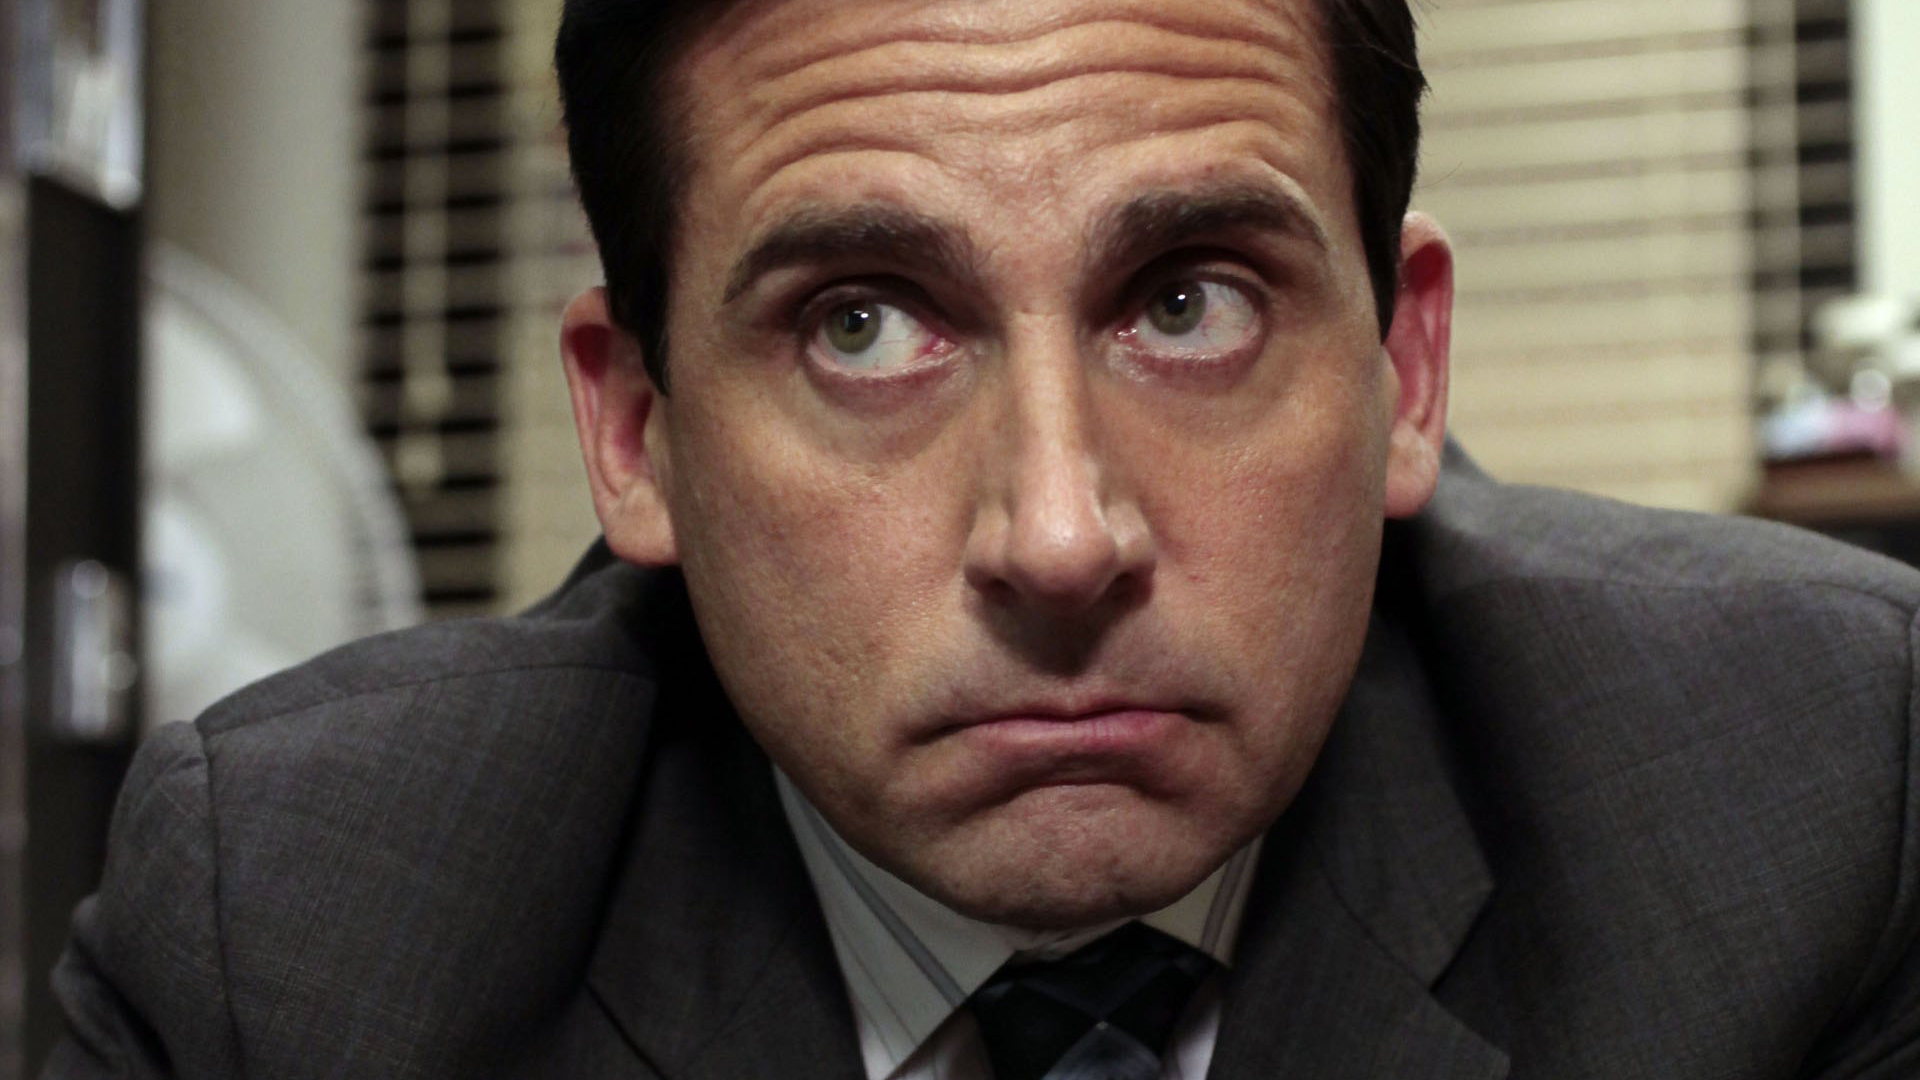 Why 'The Office' Fans Shouldn't Expect a Reboot Anytime Soon